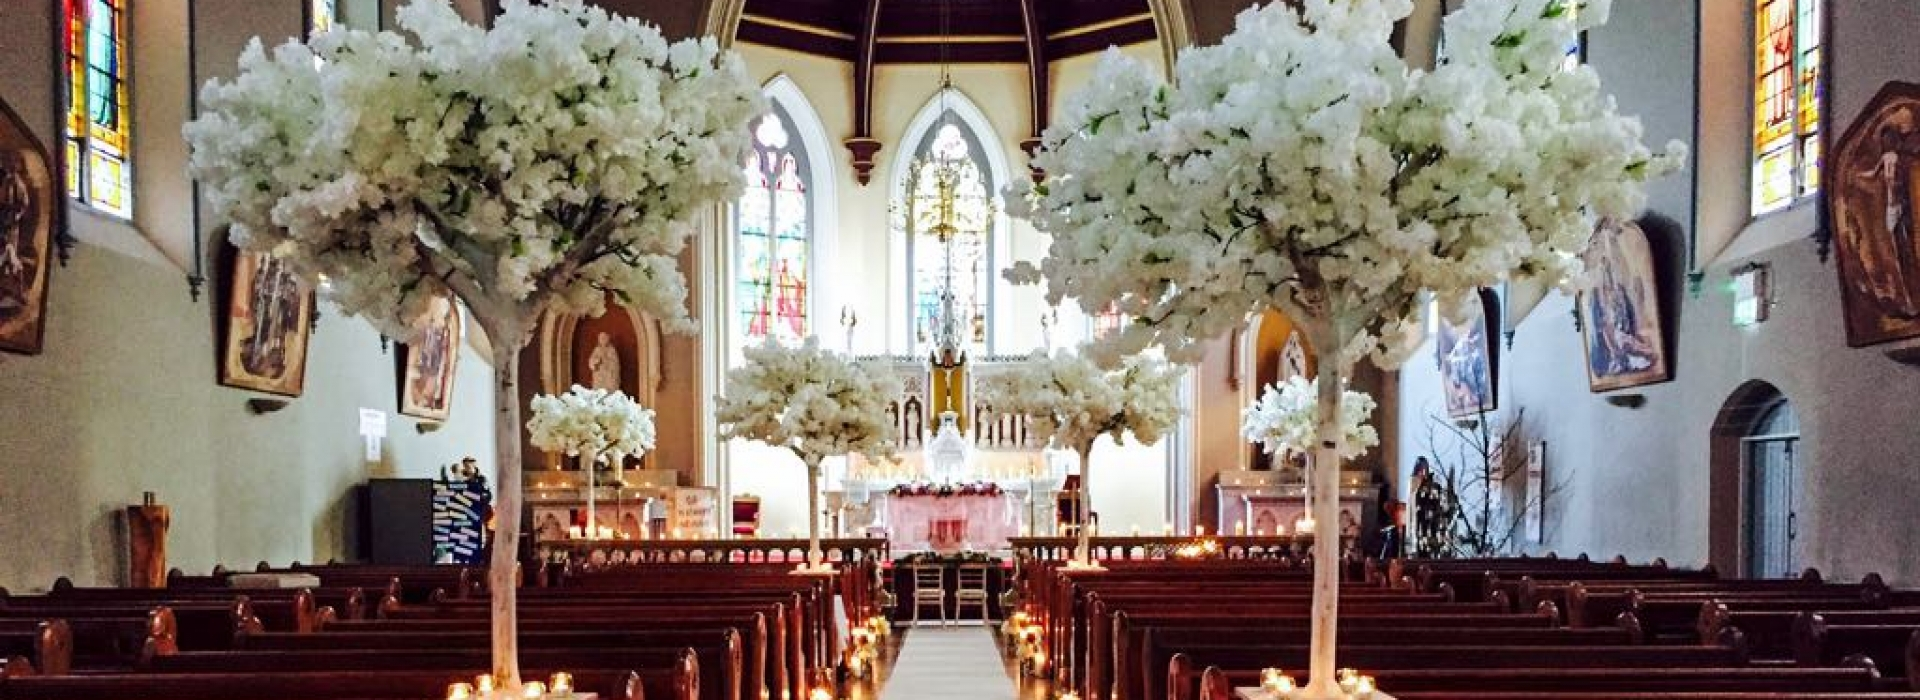 Finesse weddings wedding venue and ceremony decor and floral service white cherry blossom monostrevin junglespirit Choice Image